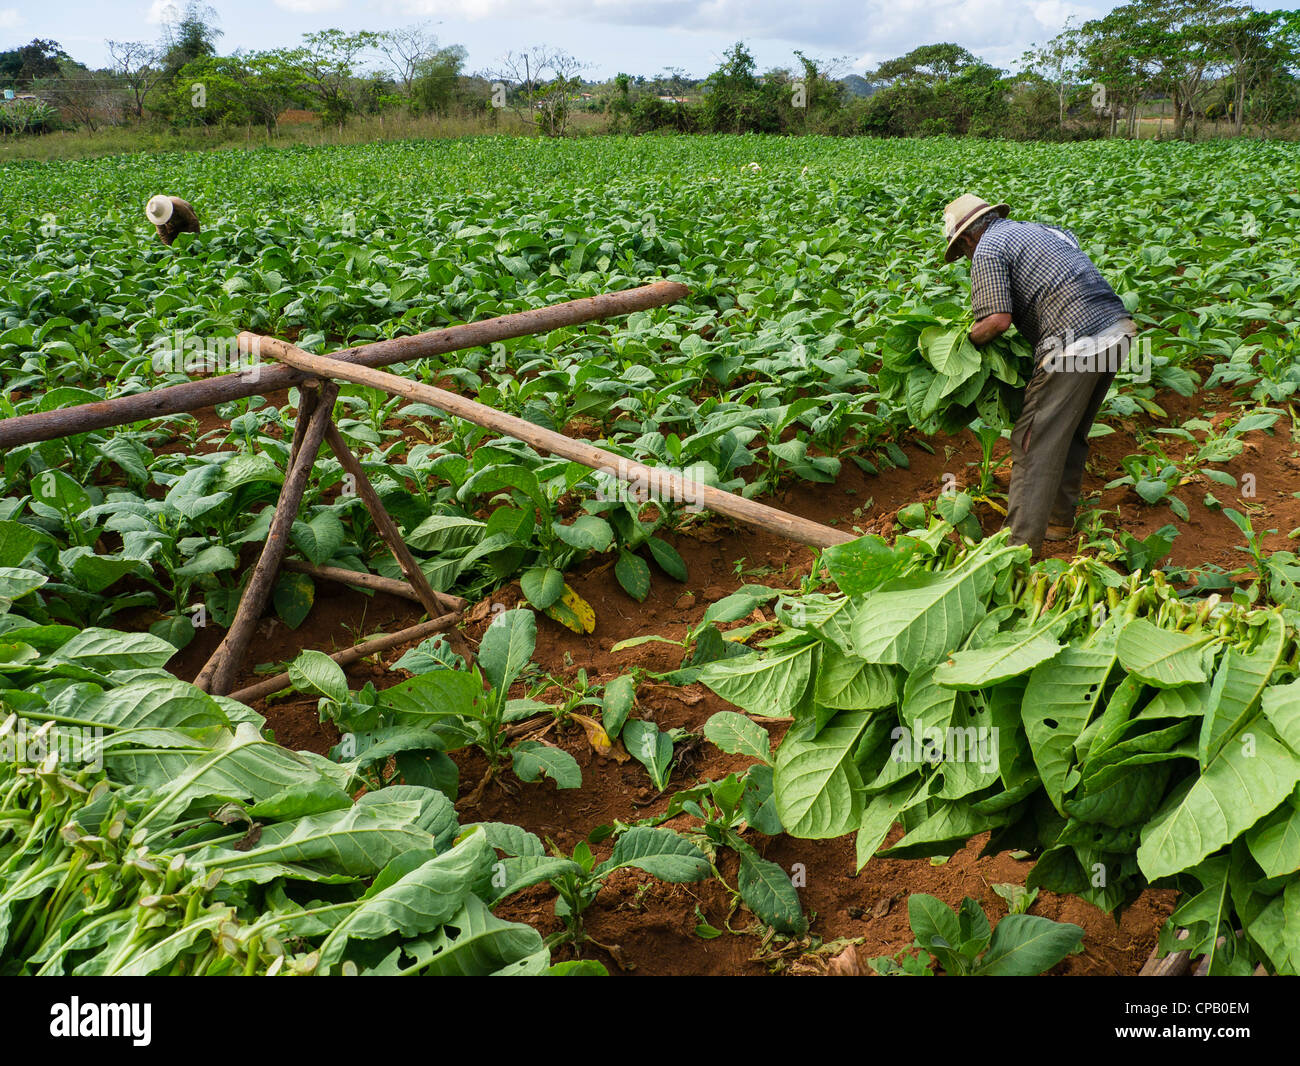 Two farmhands harvest tobacco leaves in the green fields of western Cuba near the town of Viñales in Pinar - Stock Image